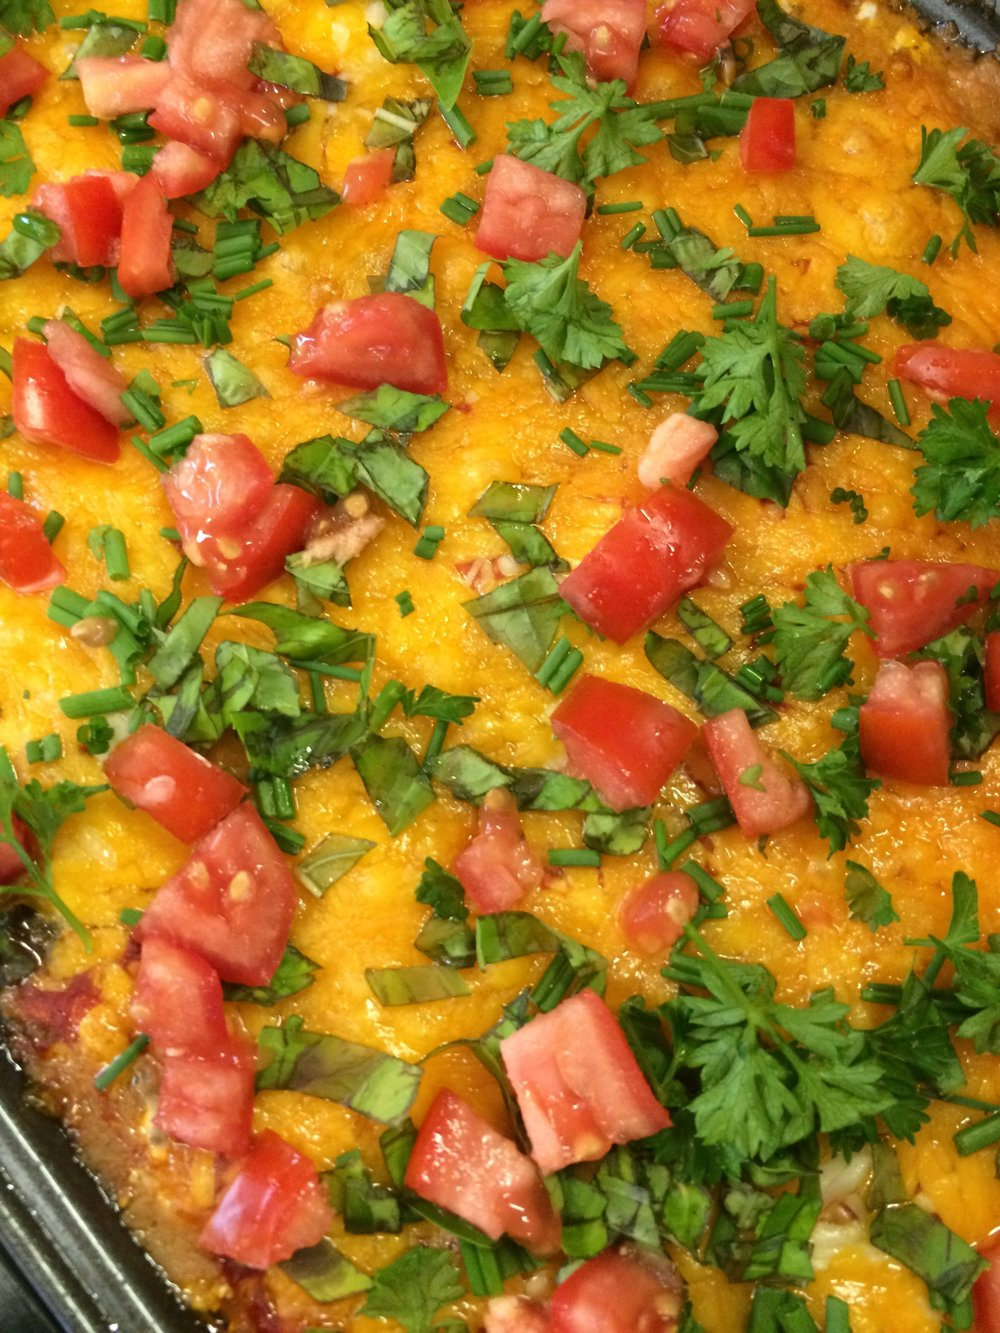 Taco dip garnished with fresh herbs and veggies.